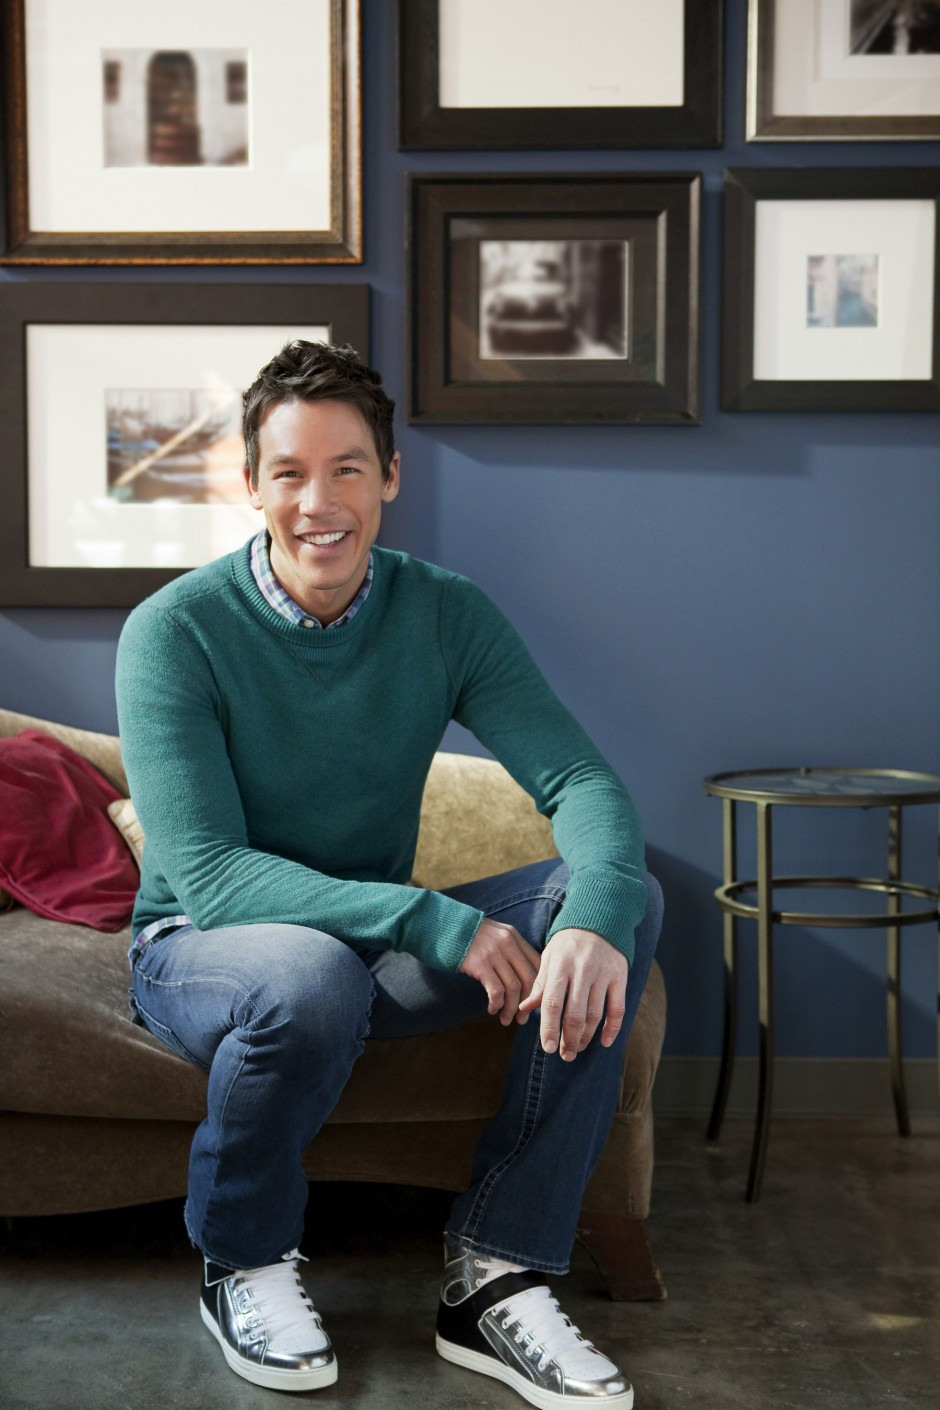 Hgtv And Diy Network Stars Scheduled To Appear At 2014